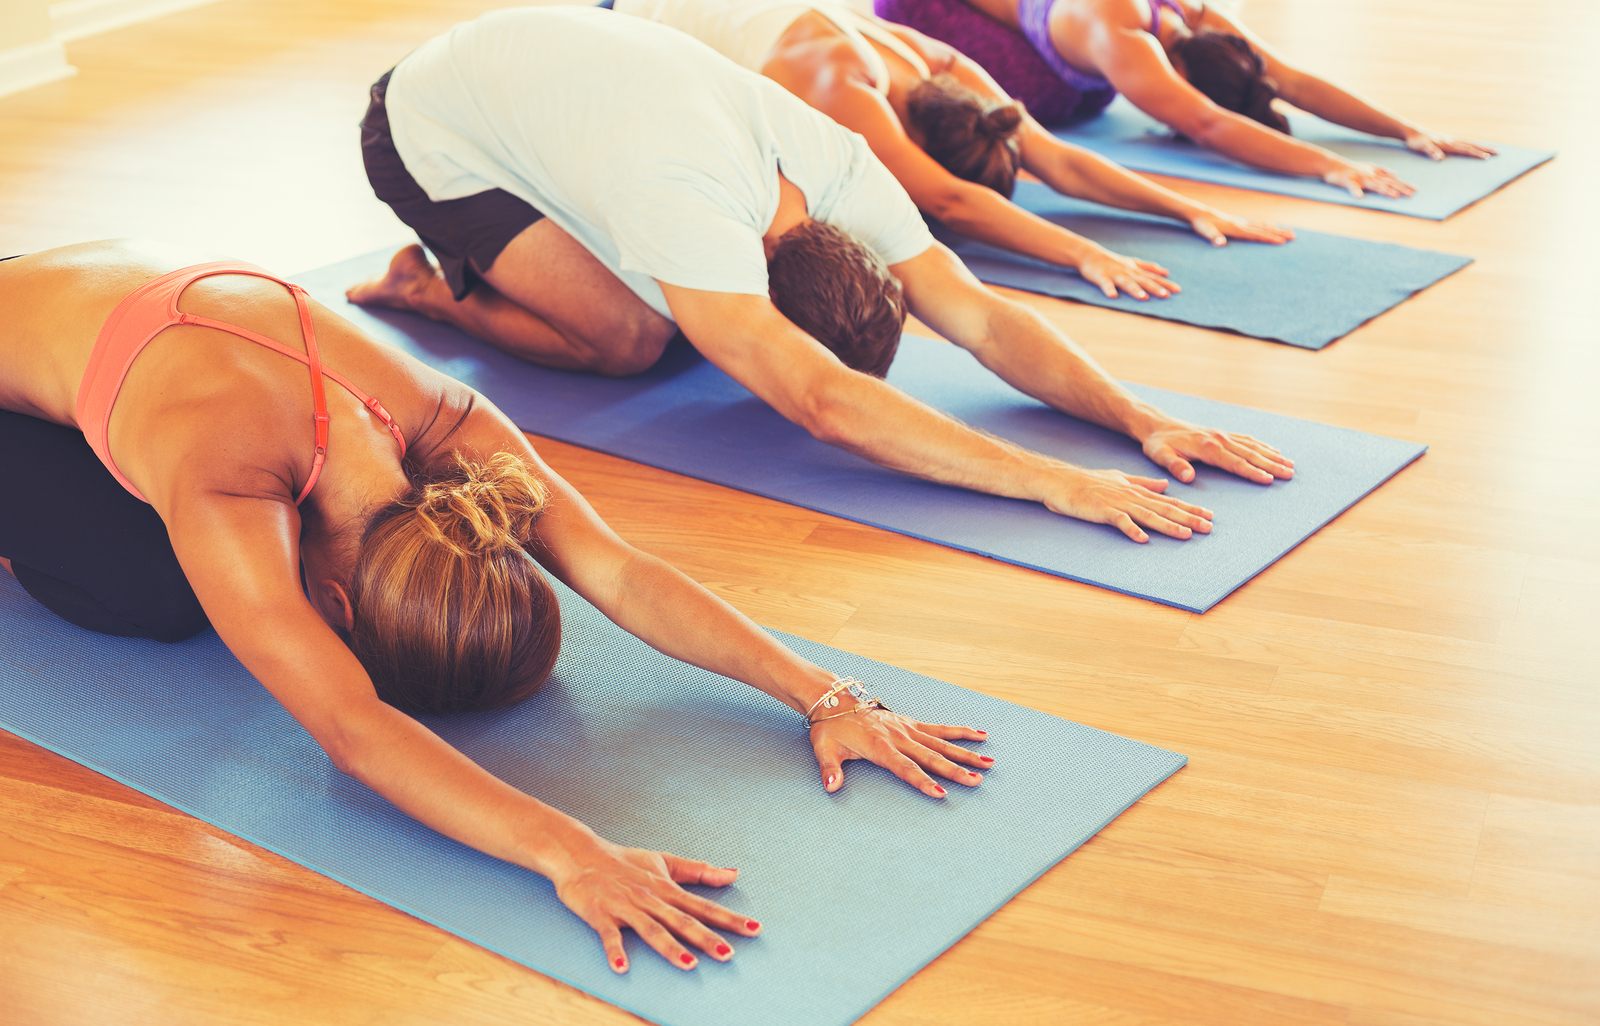 bigstock-Yoga-Class-Group-of-People-Re-99566111